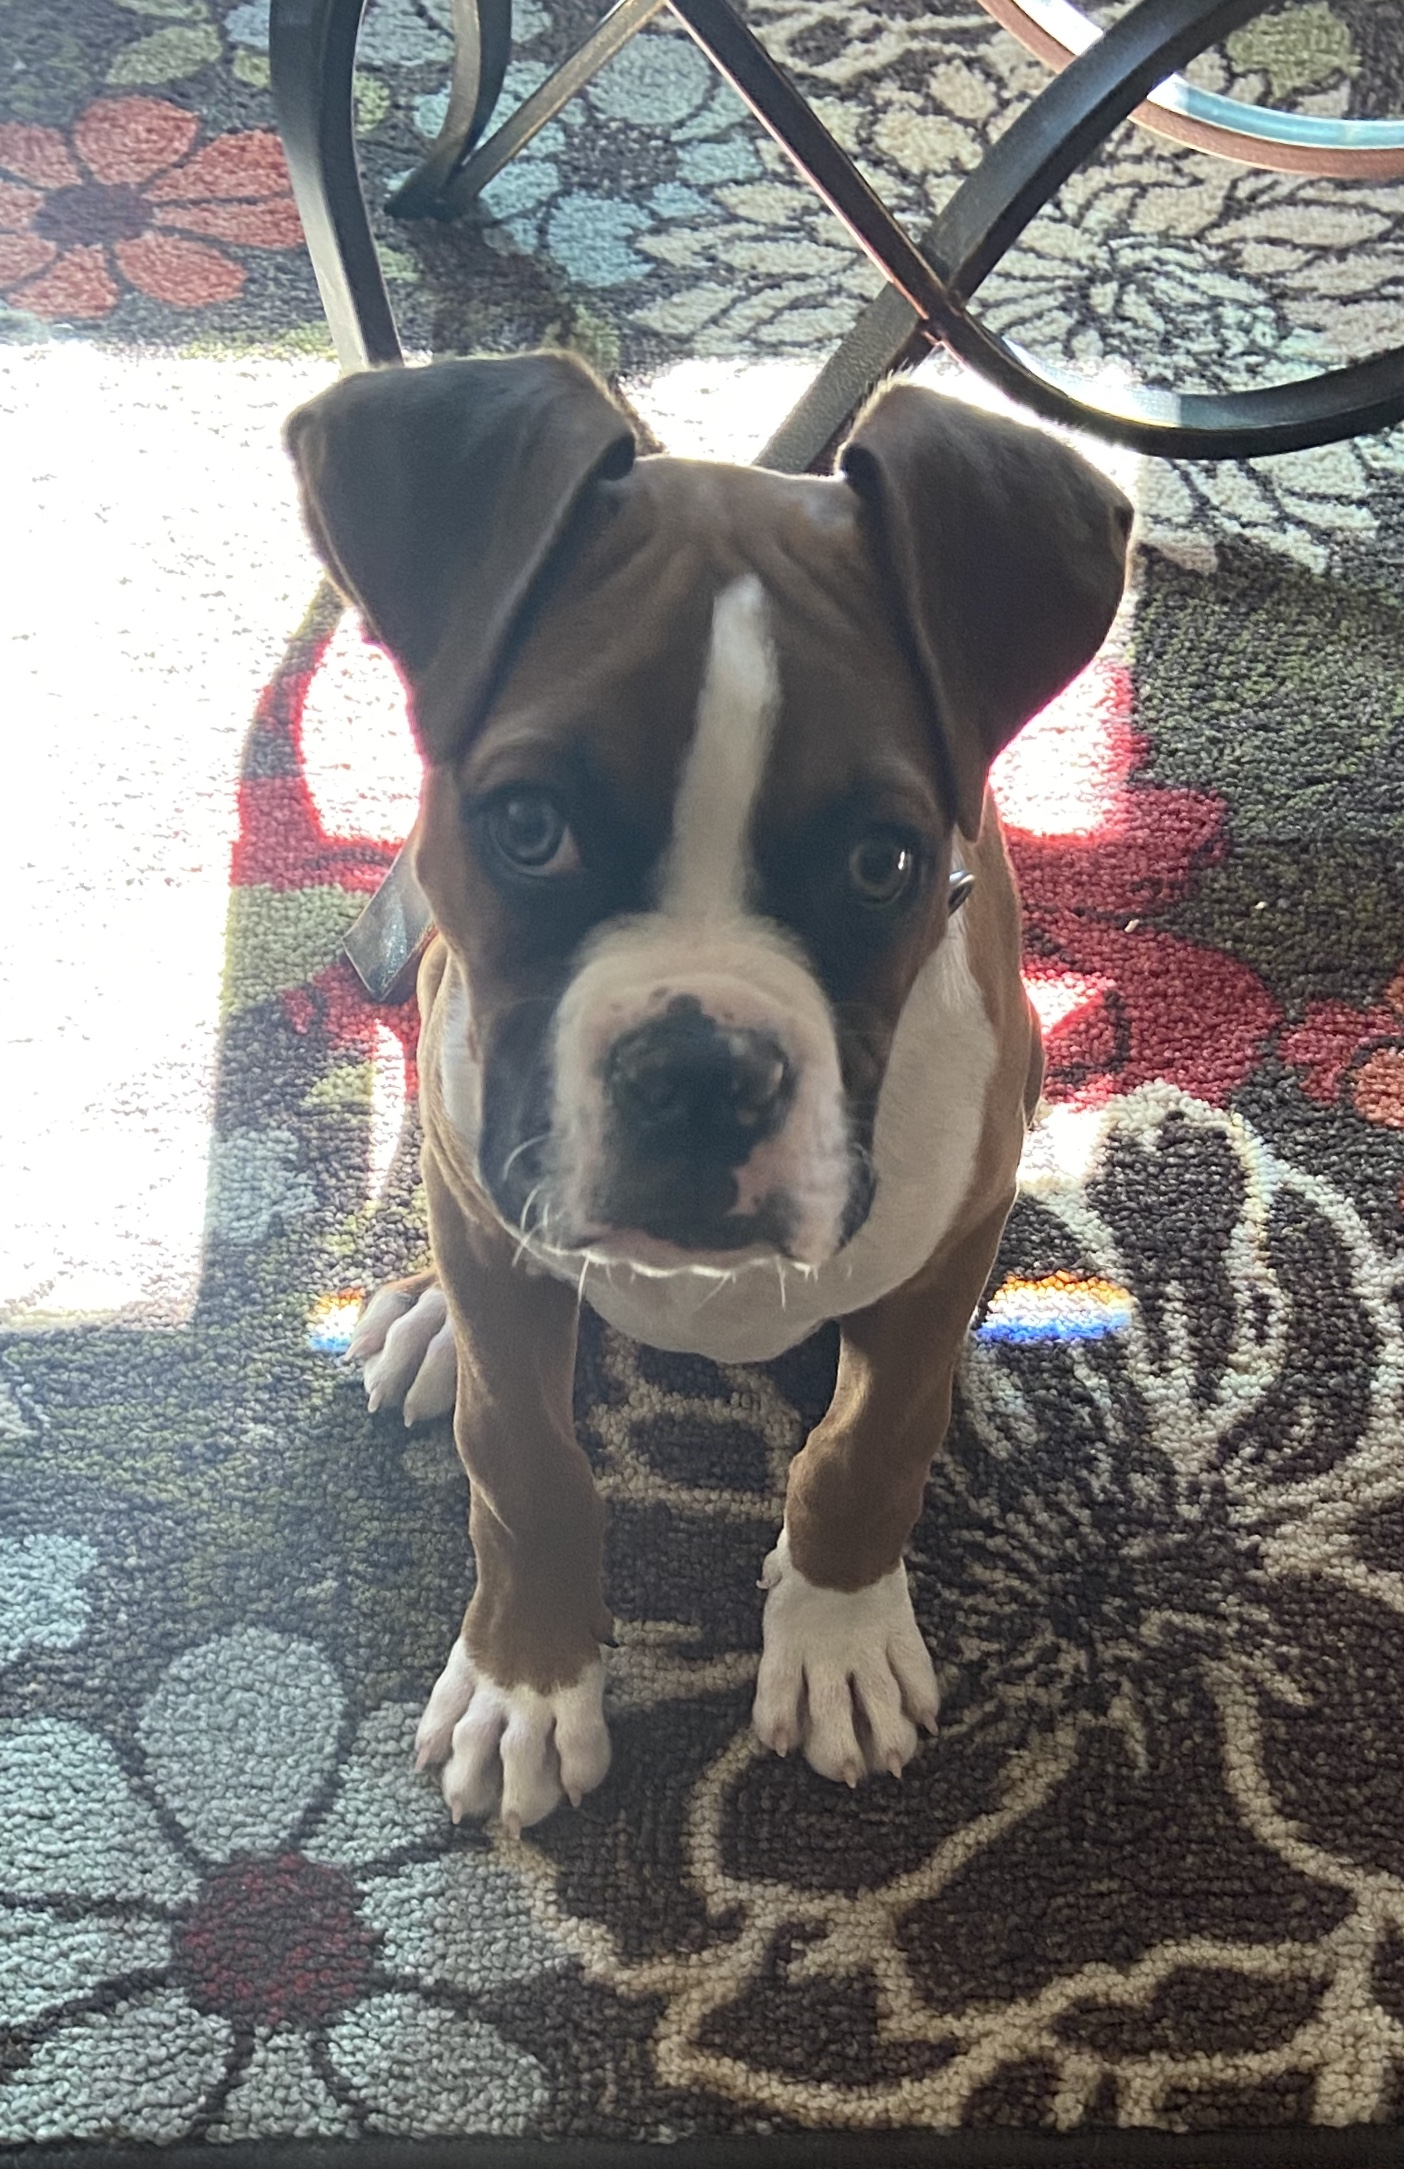 """This boxer puppy is named Charley Burley in honor of the Hall-of-Famer and, despite being 12 weeks old, he weighs in at a solid 19 pounds. His human, boxing broadcaster James """"Smitty"""" Smith, shares Charley's energy and zest for life. Photo credit: James """"Smitty"""" Smith"""